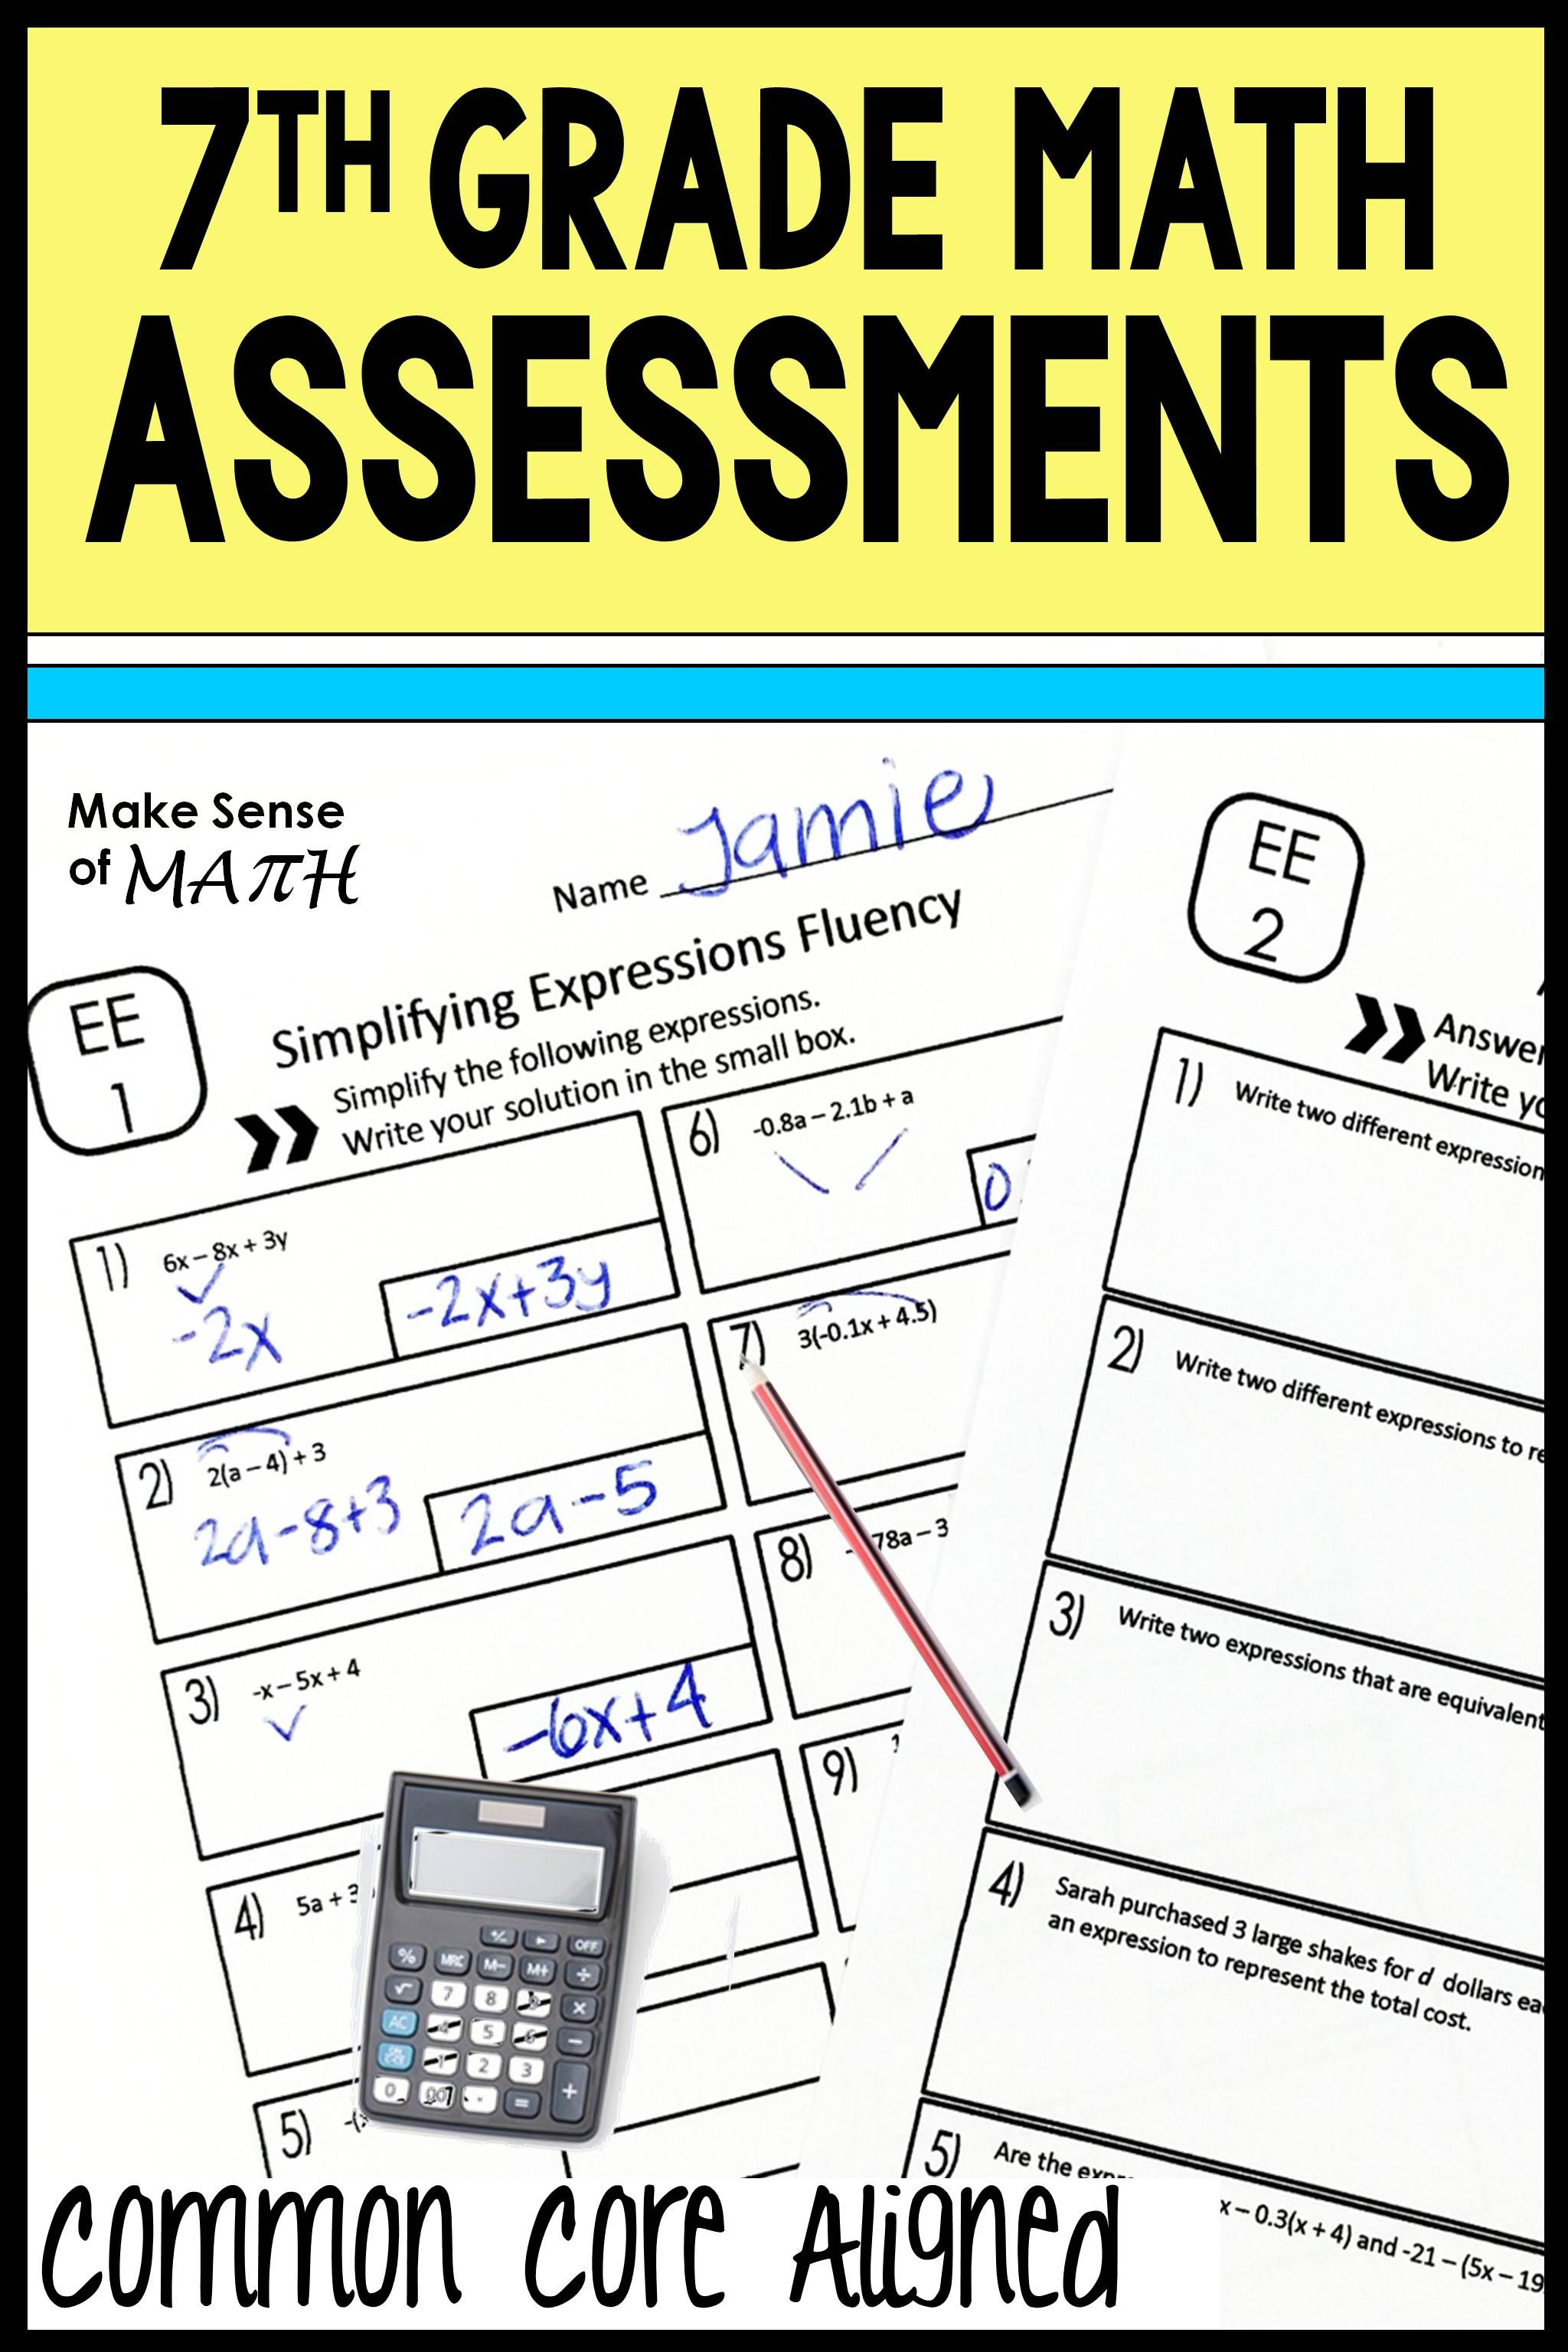 7th Grade Math Assessments Common Core Bundle Editable